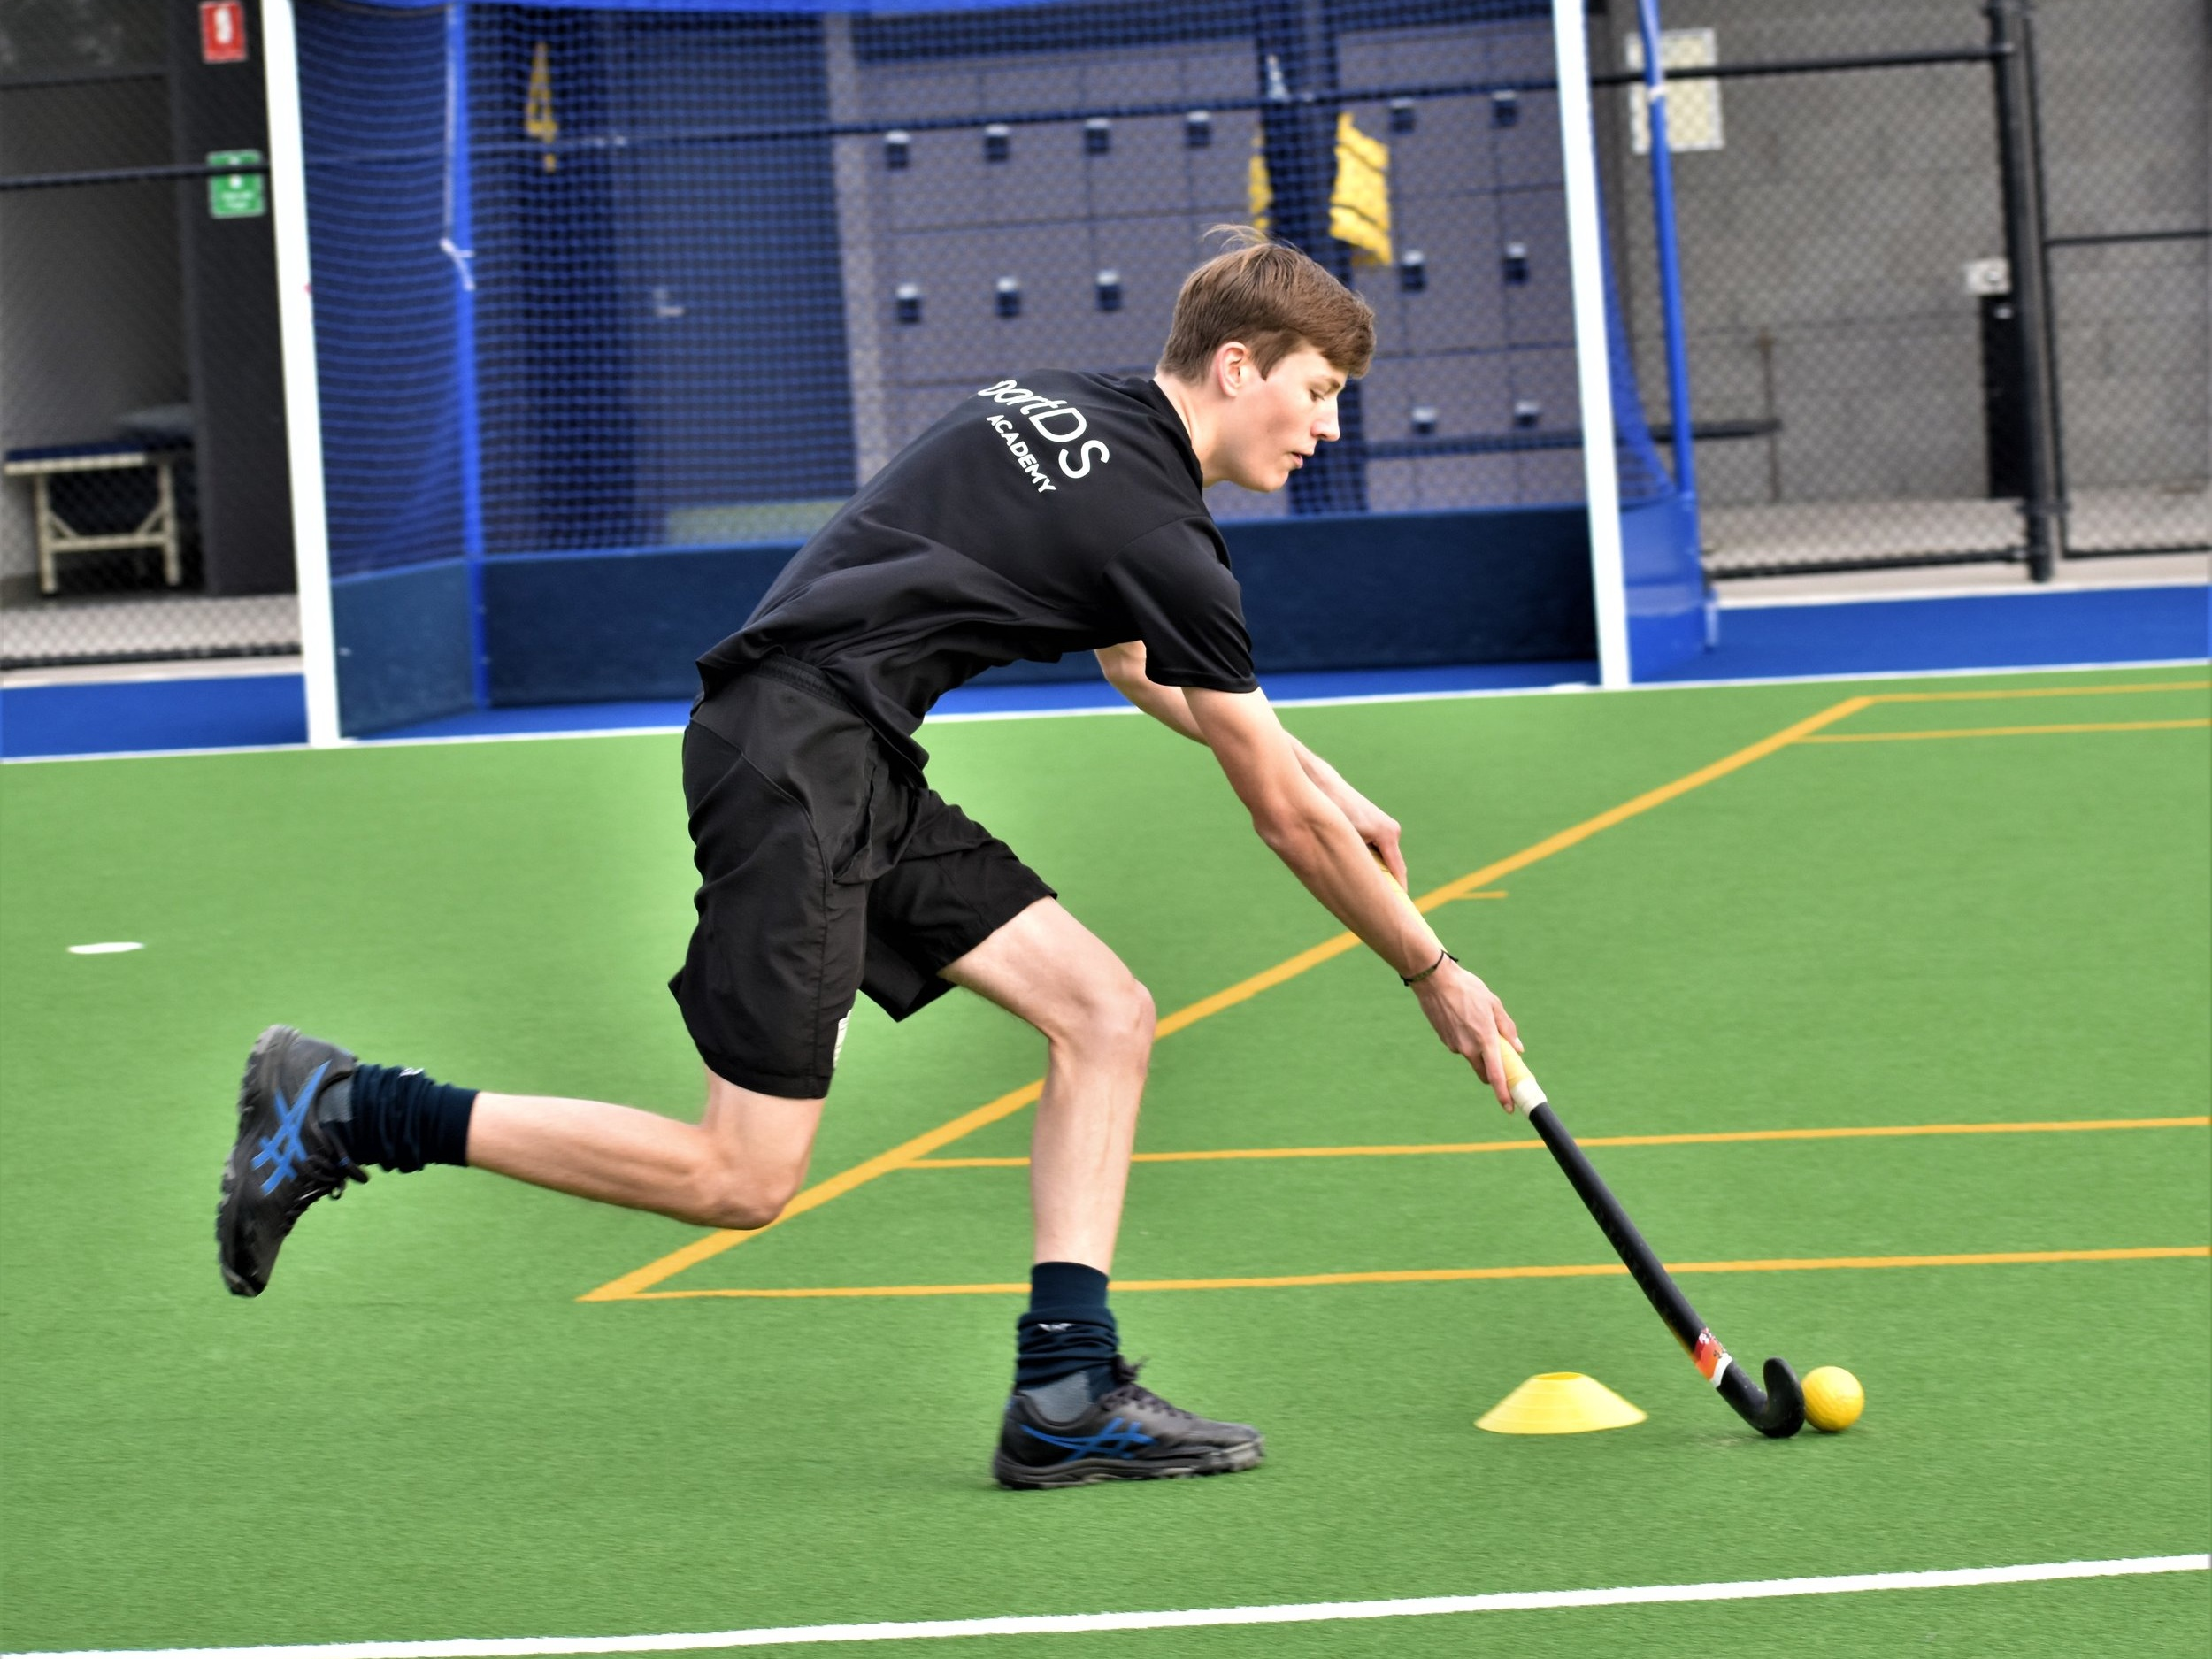 Technical Sessions - Develop your stick skills, decision making and game tactics in pitch sessions at one of our inner city locations. Learn the skills you need for the position that you play.